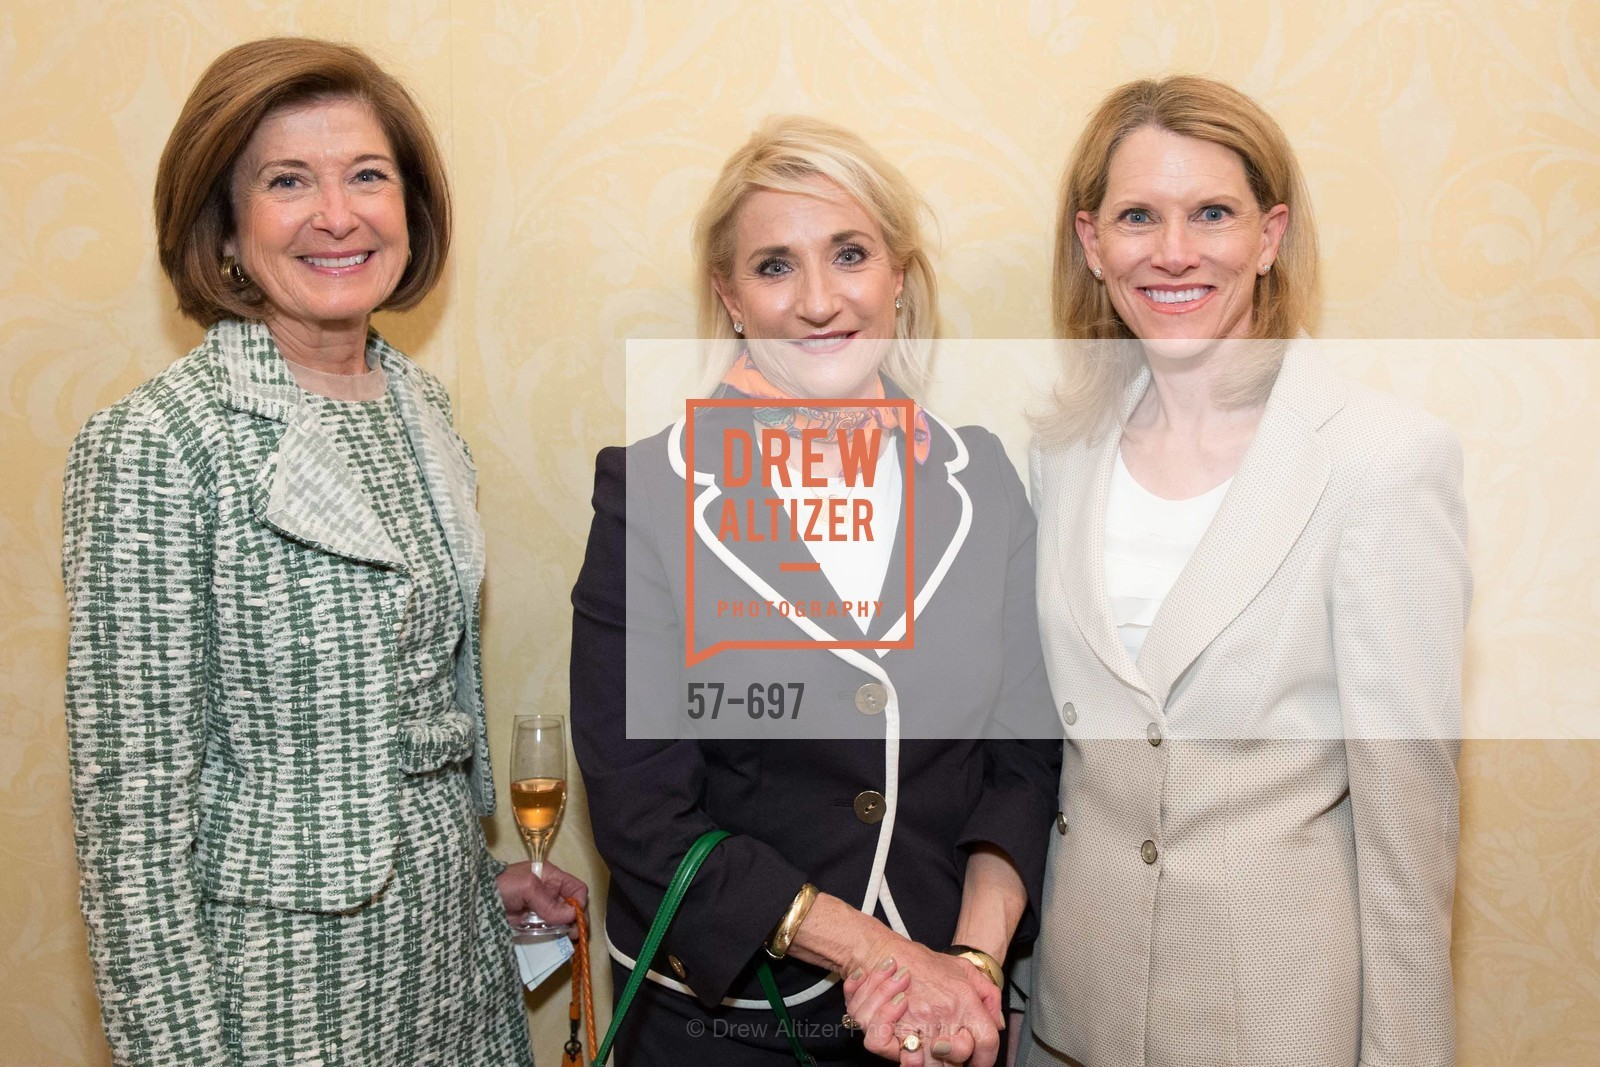 JoAn Smith, Deborah Avakian, Judy LeMarr, JUNIOR LEAGUE OF SAN FRANCISCO's WATCH Luncheon, US, May 5th, 2015,Drew Altizer, Drew Altizer Photography, full-service agency, private events, San Francisco photographer, photographer california